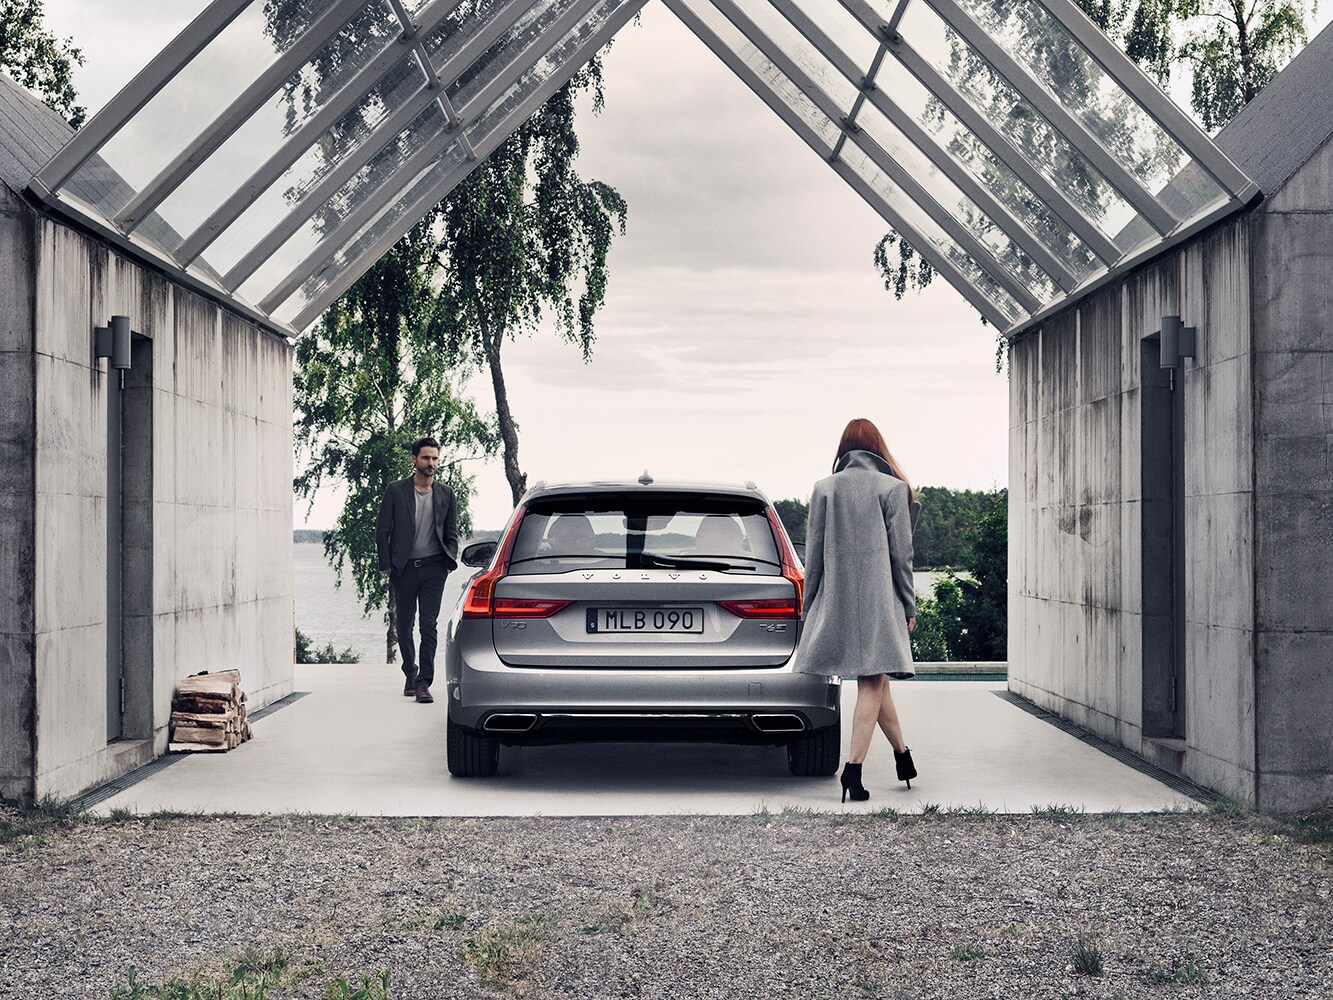 Volvo V90 in glass-roofed parking bay with woman approaching